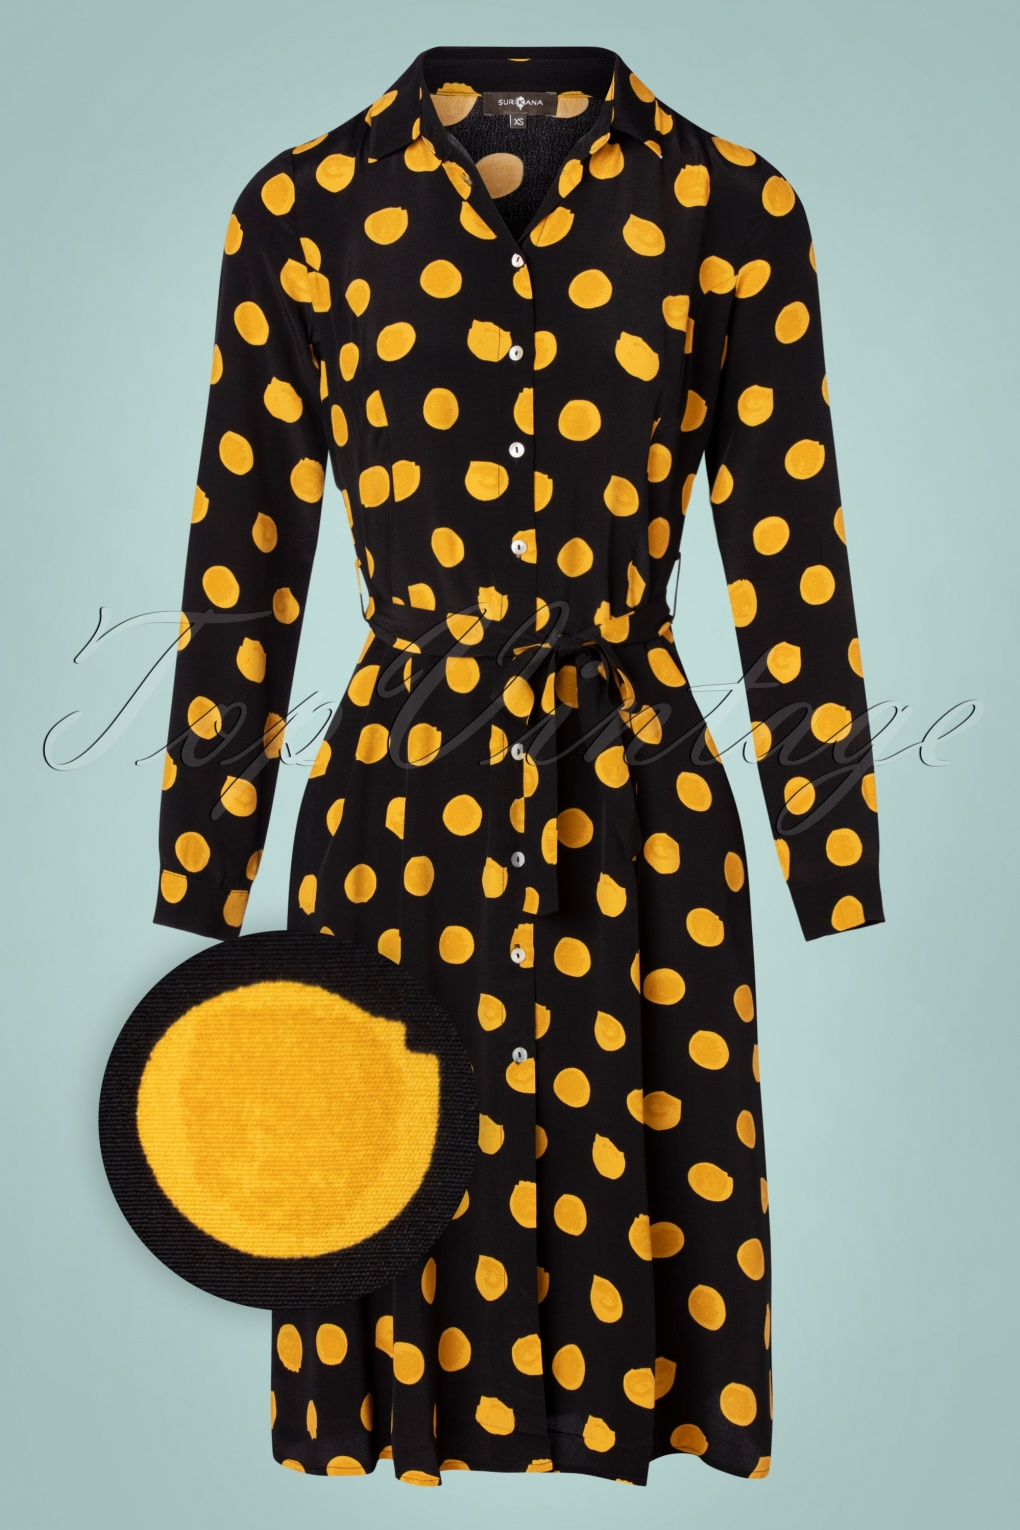 Vintage Style Dresses | Vintage Inspired Dresses 60s Spot On Shirt Dress in Black and Yellow £79.95 AT vintagedancer.com